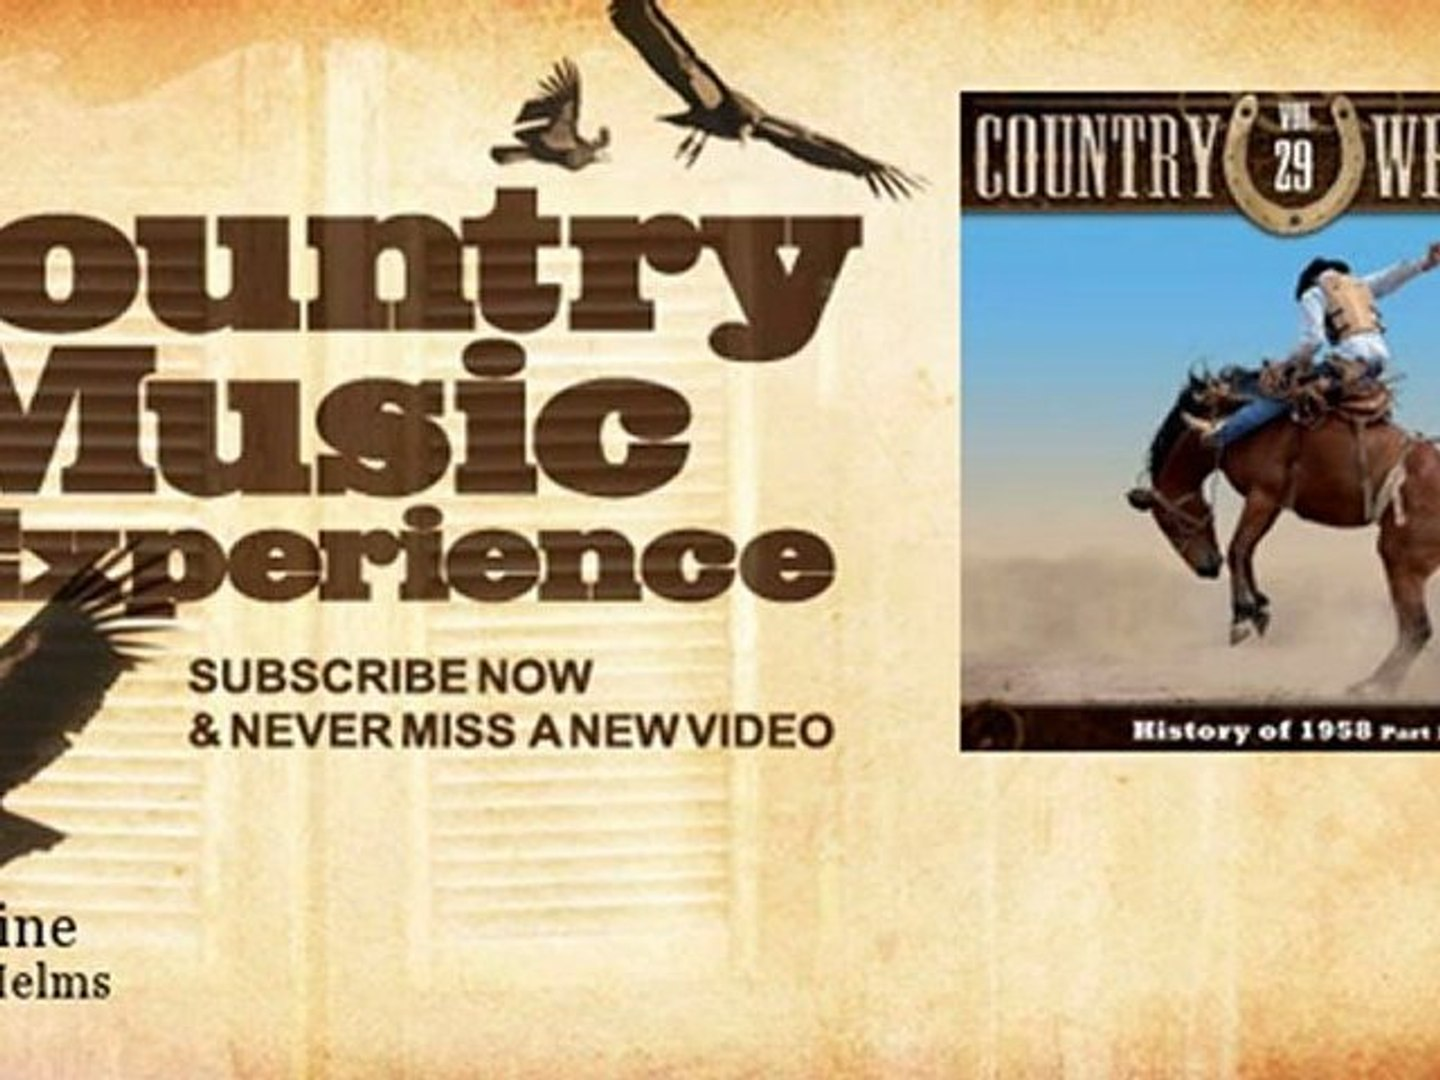 Bobby Helms - Jaqueline - Country Music Experience